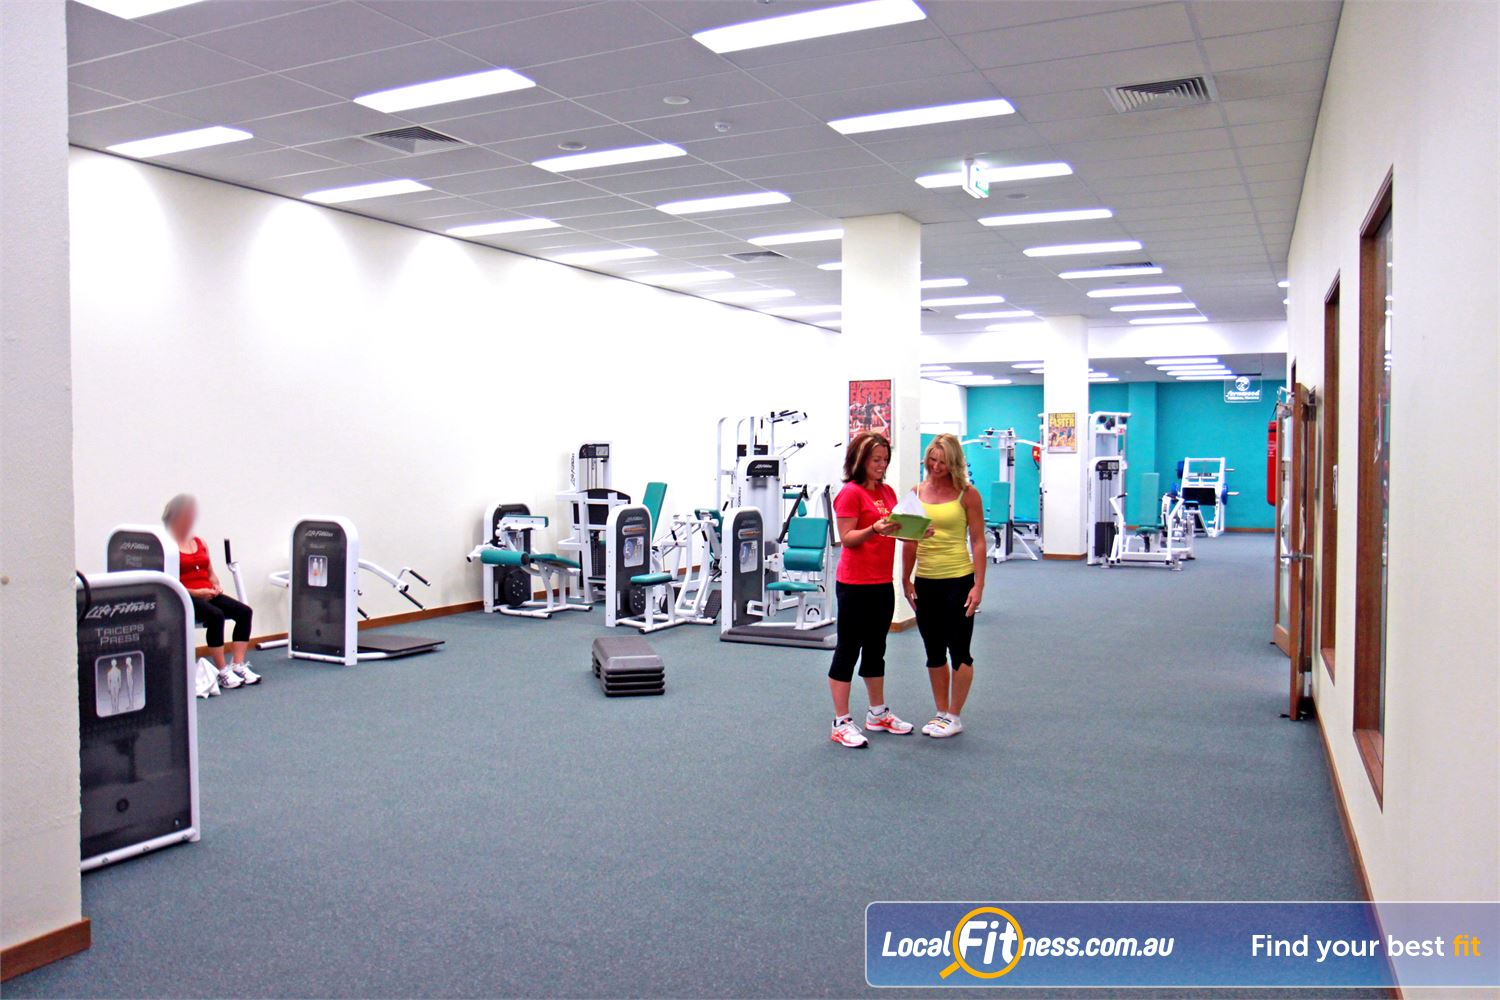 Fernwood Fitness Campbelltown Welcome to the spacious and convenient Fernwood Campbelltown women's gym.